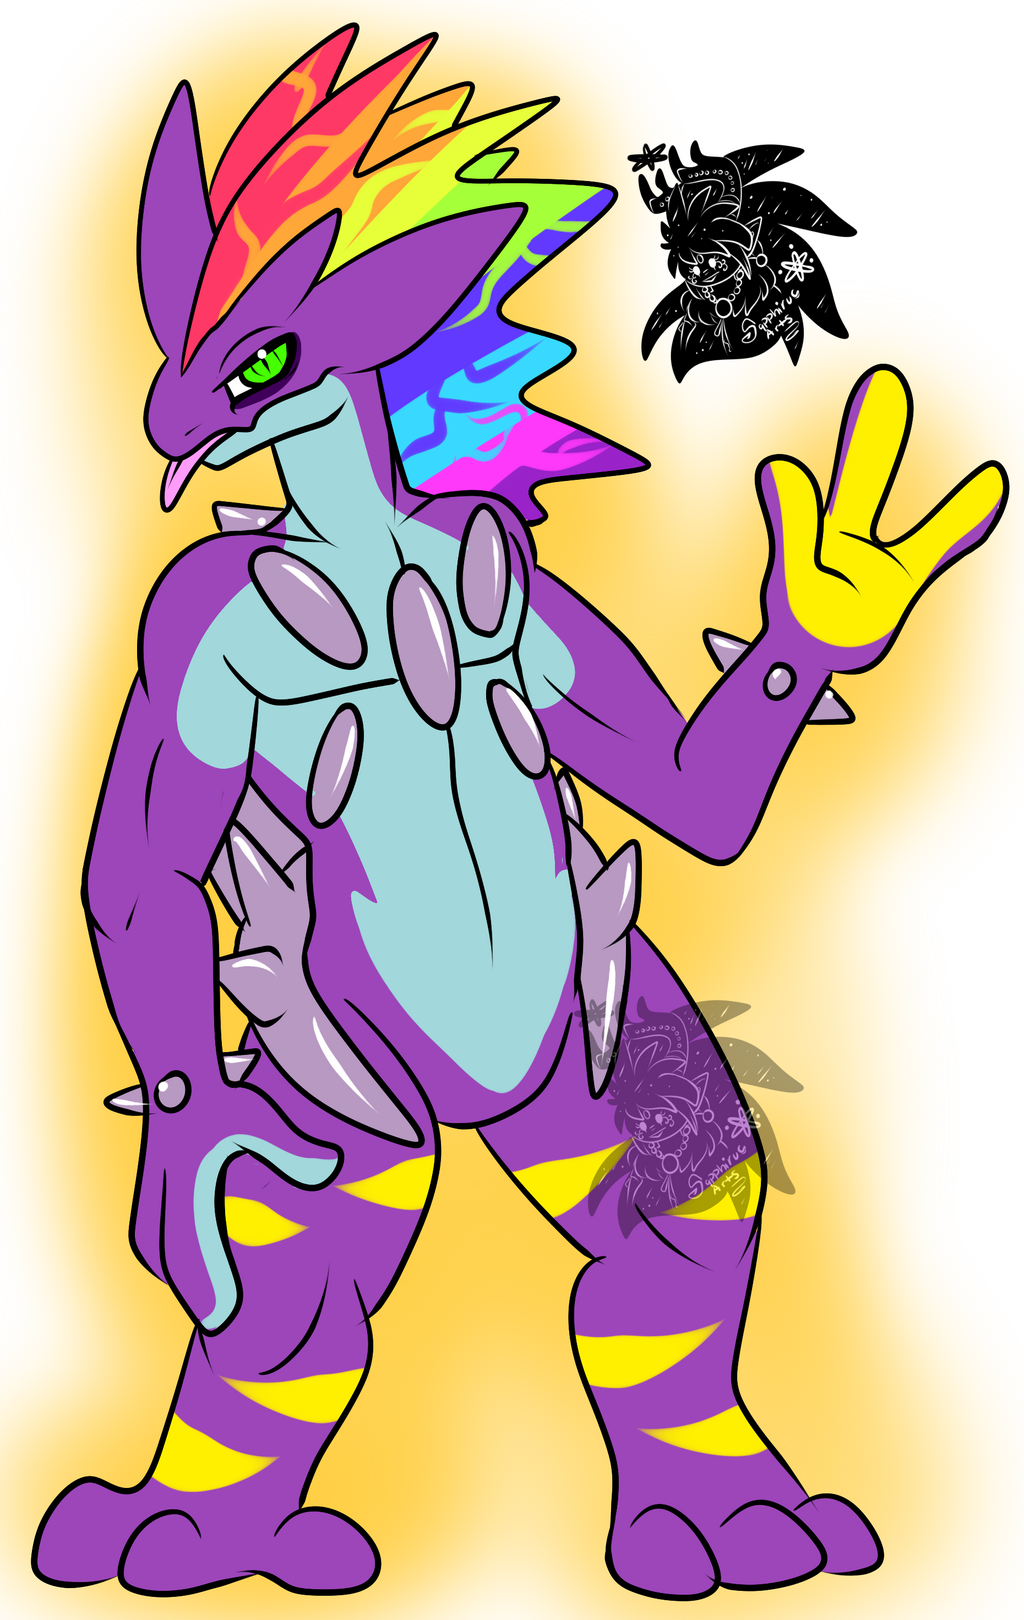 10 mil Bolts Toxtricity +Flatcolored Commission+